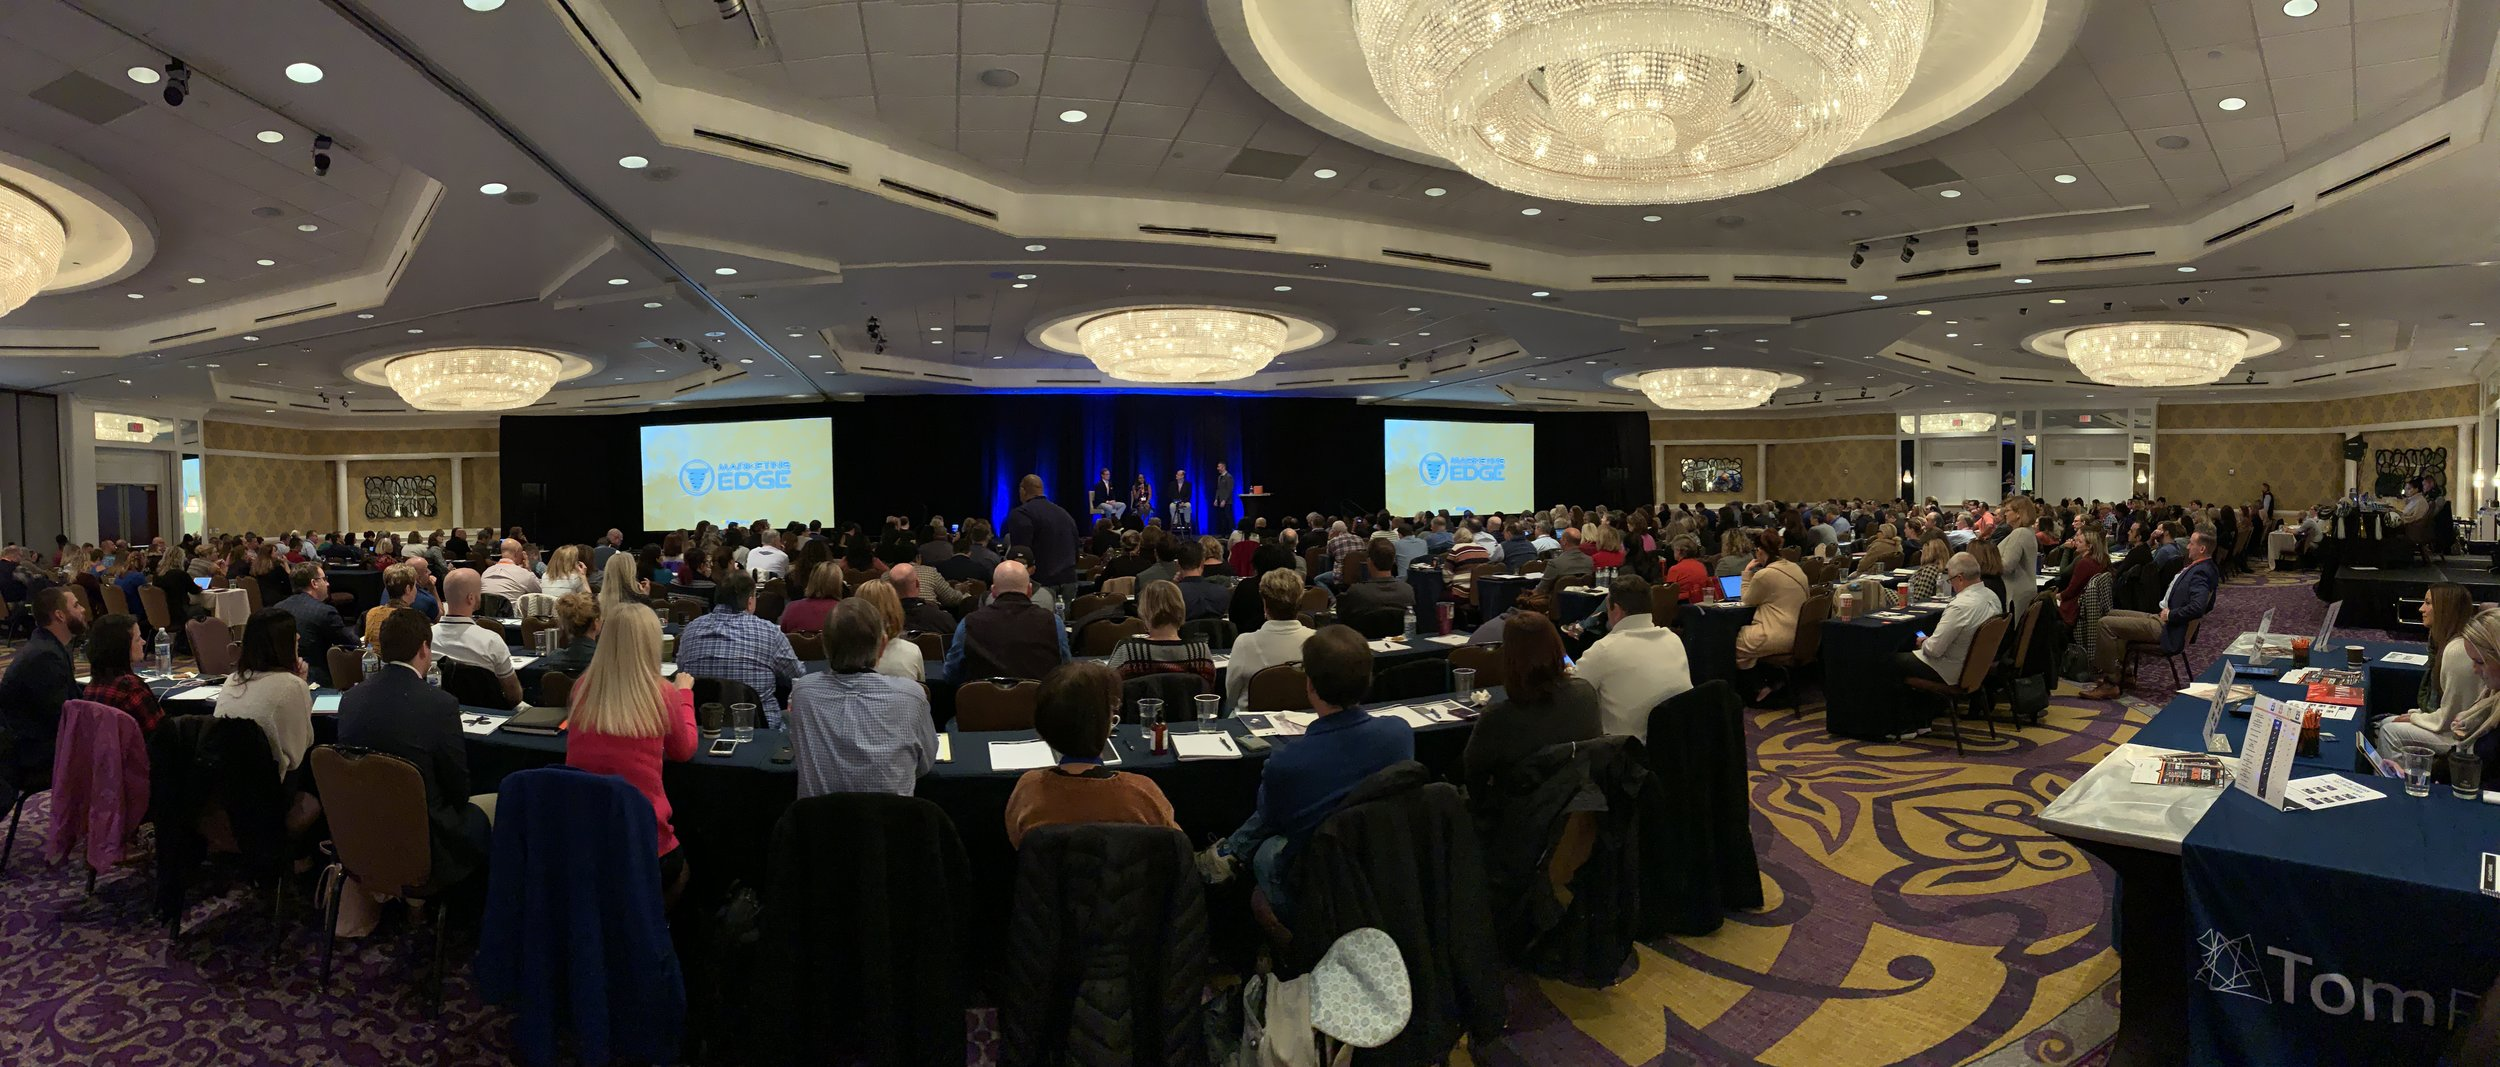 A packed crowd on Day 2 of the Marketing Edge conference.